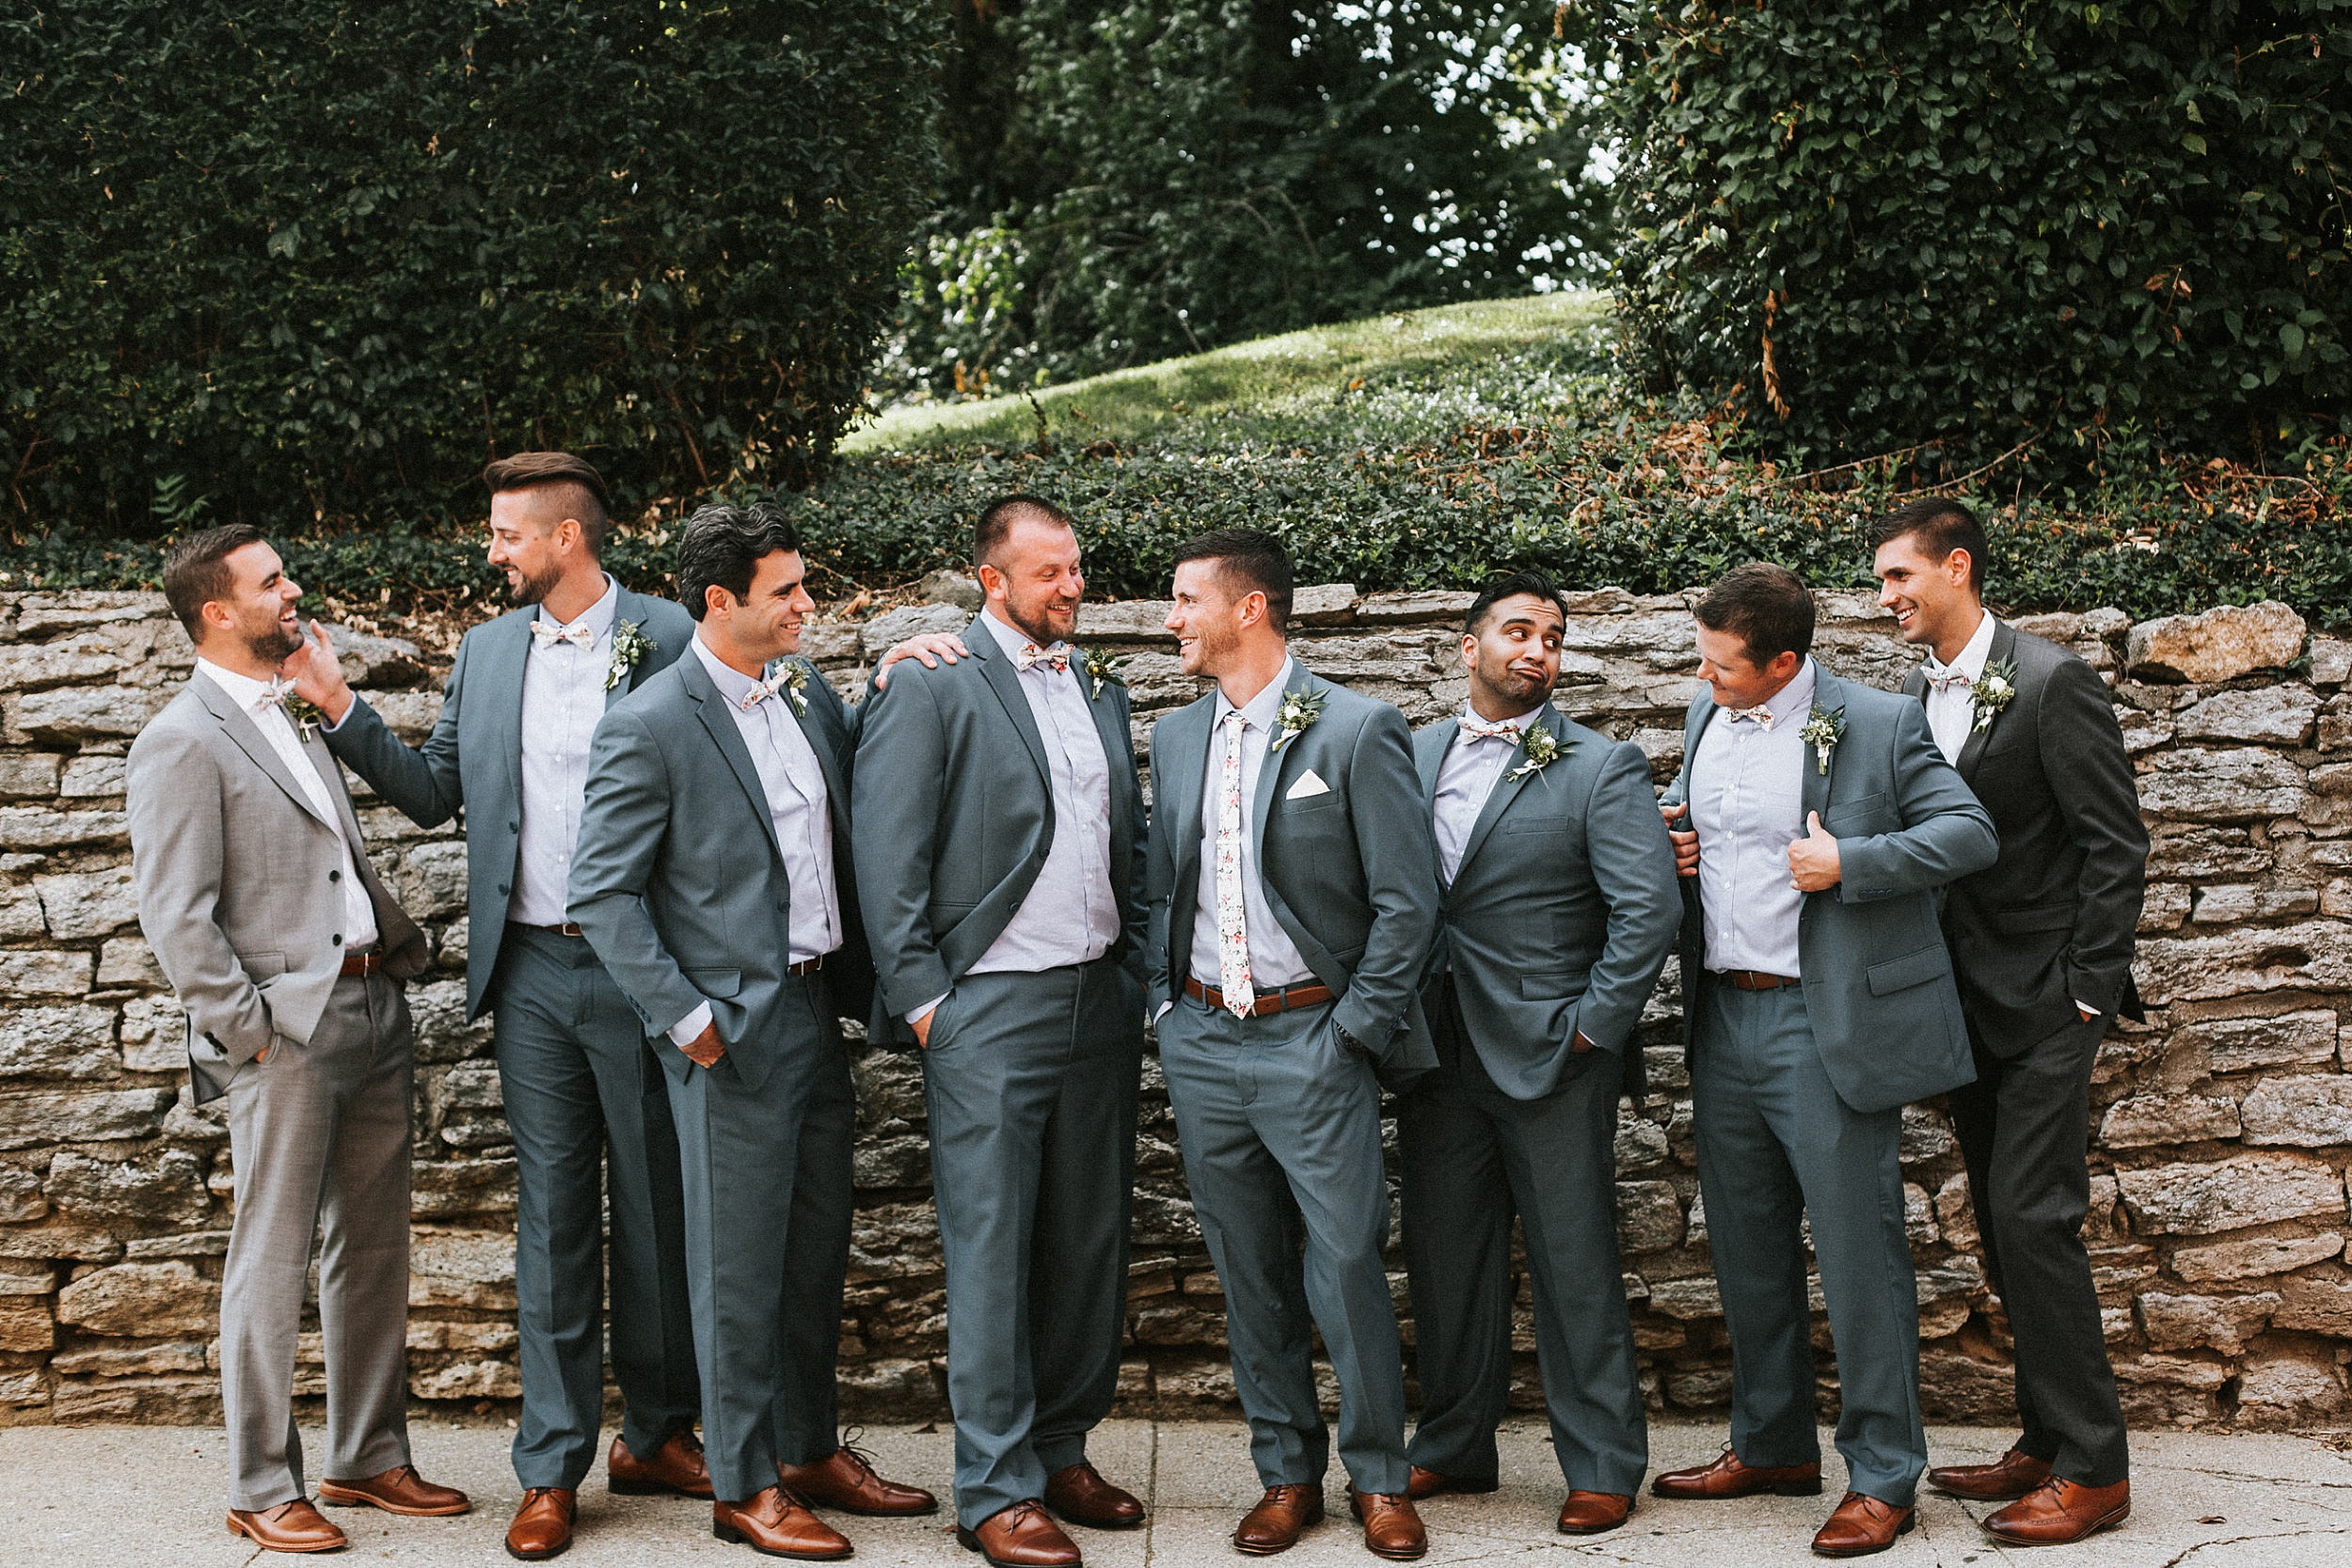 Brooke Townsend Photography - Cincinnati Wedding Photographer (68 of 170).jpg